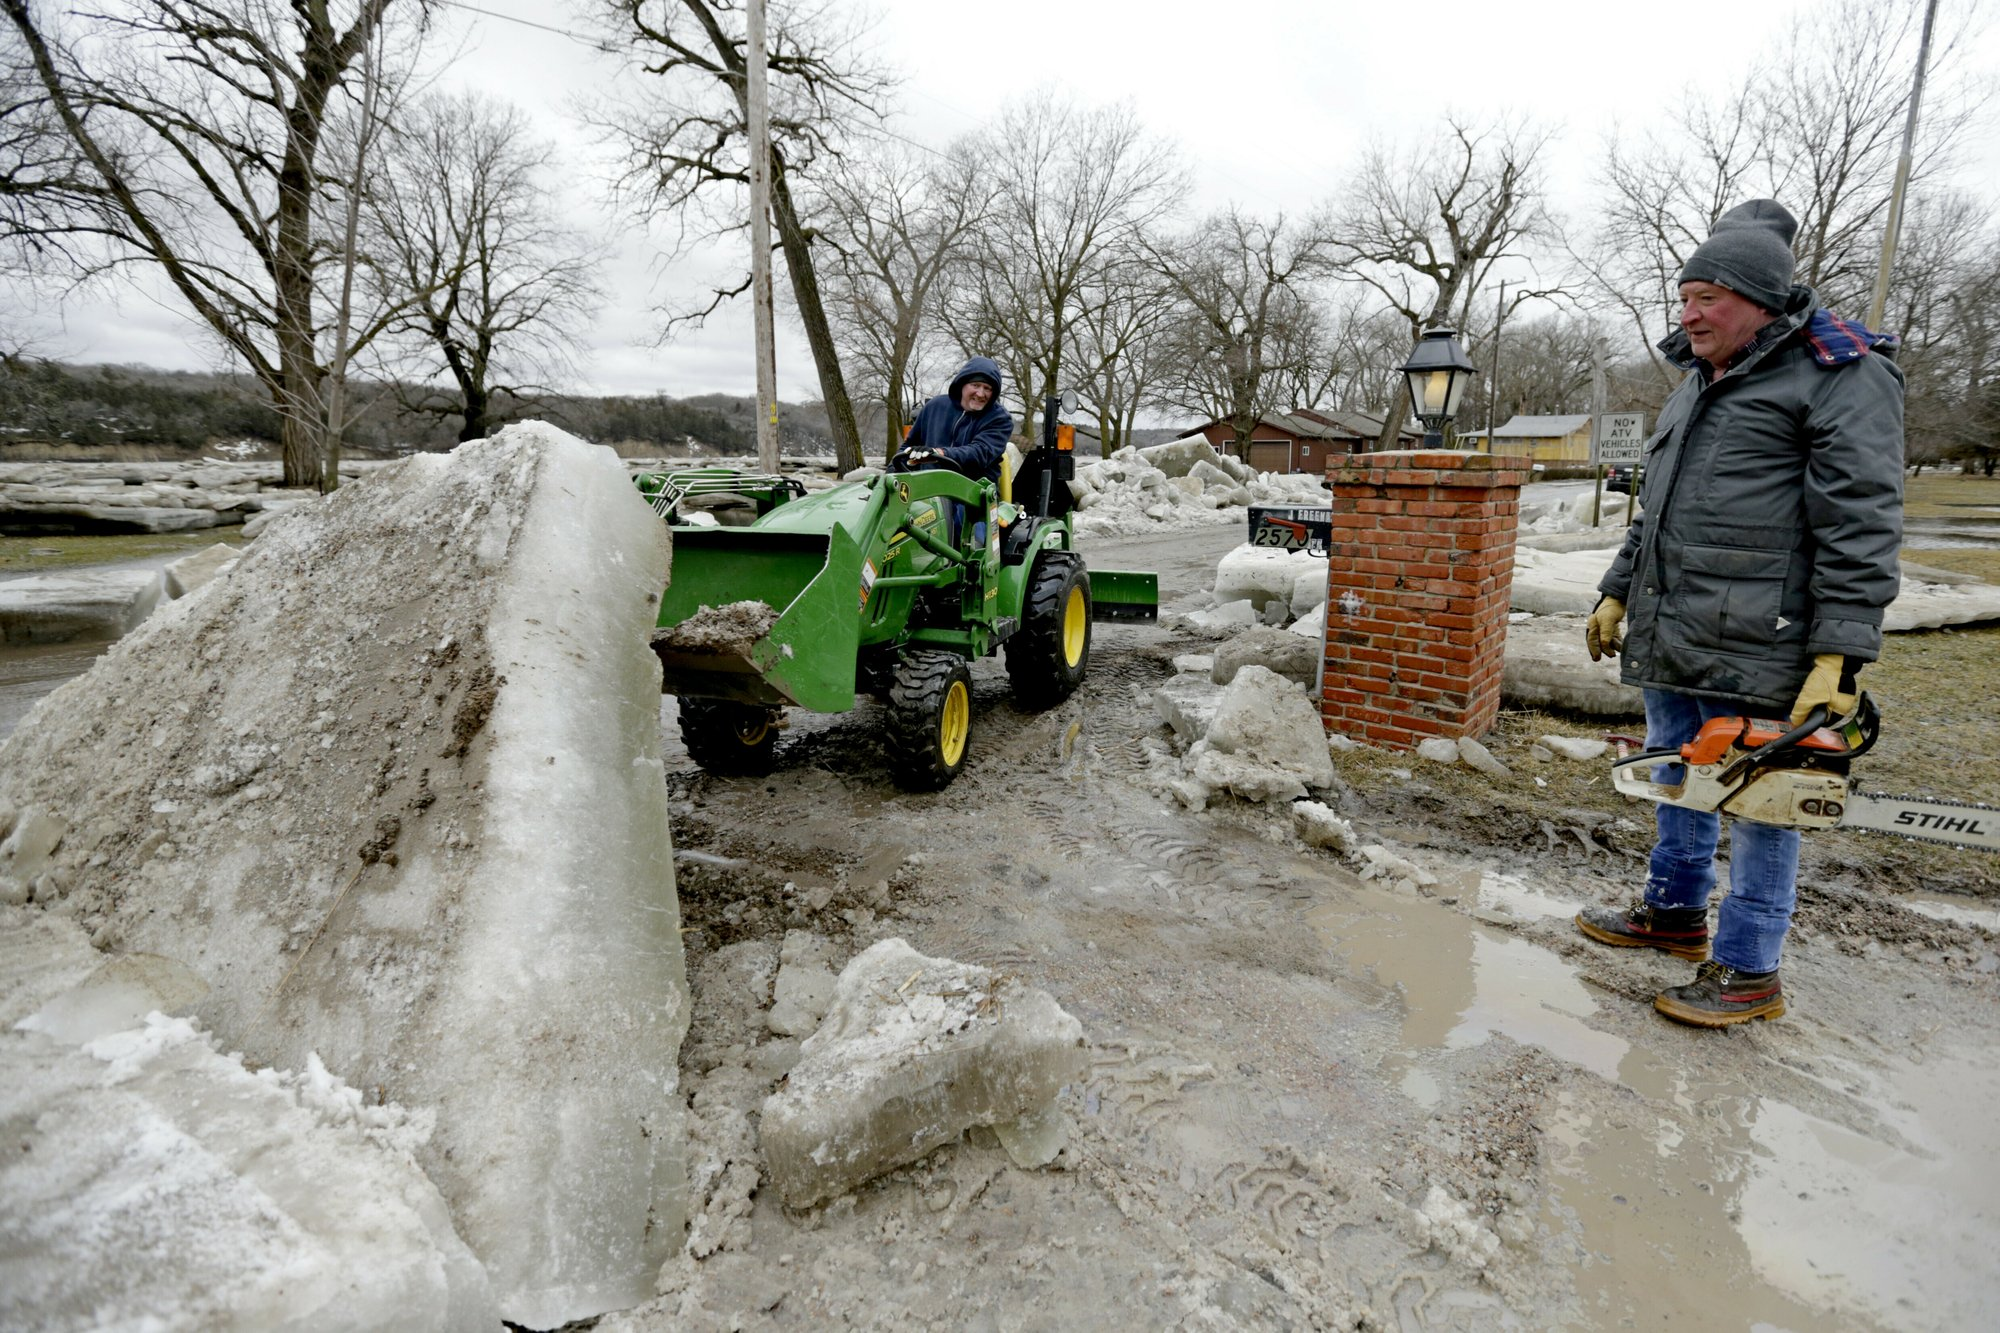 Heavy rain atop frozen ground causes flooding in US Midwest